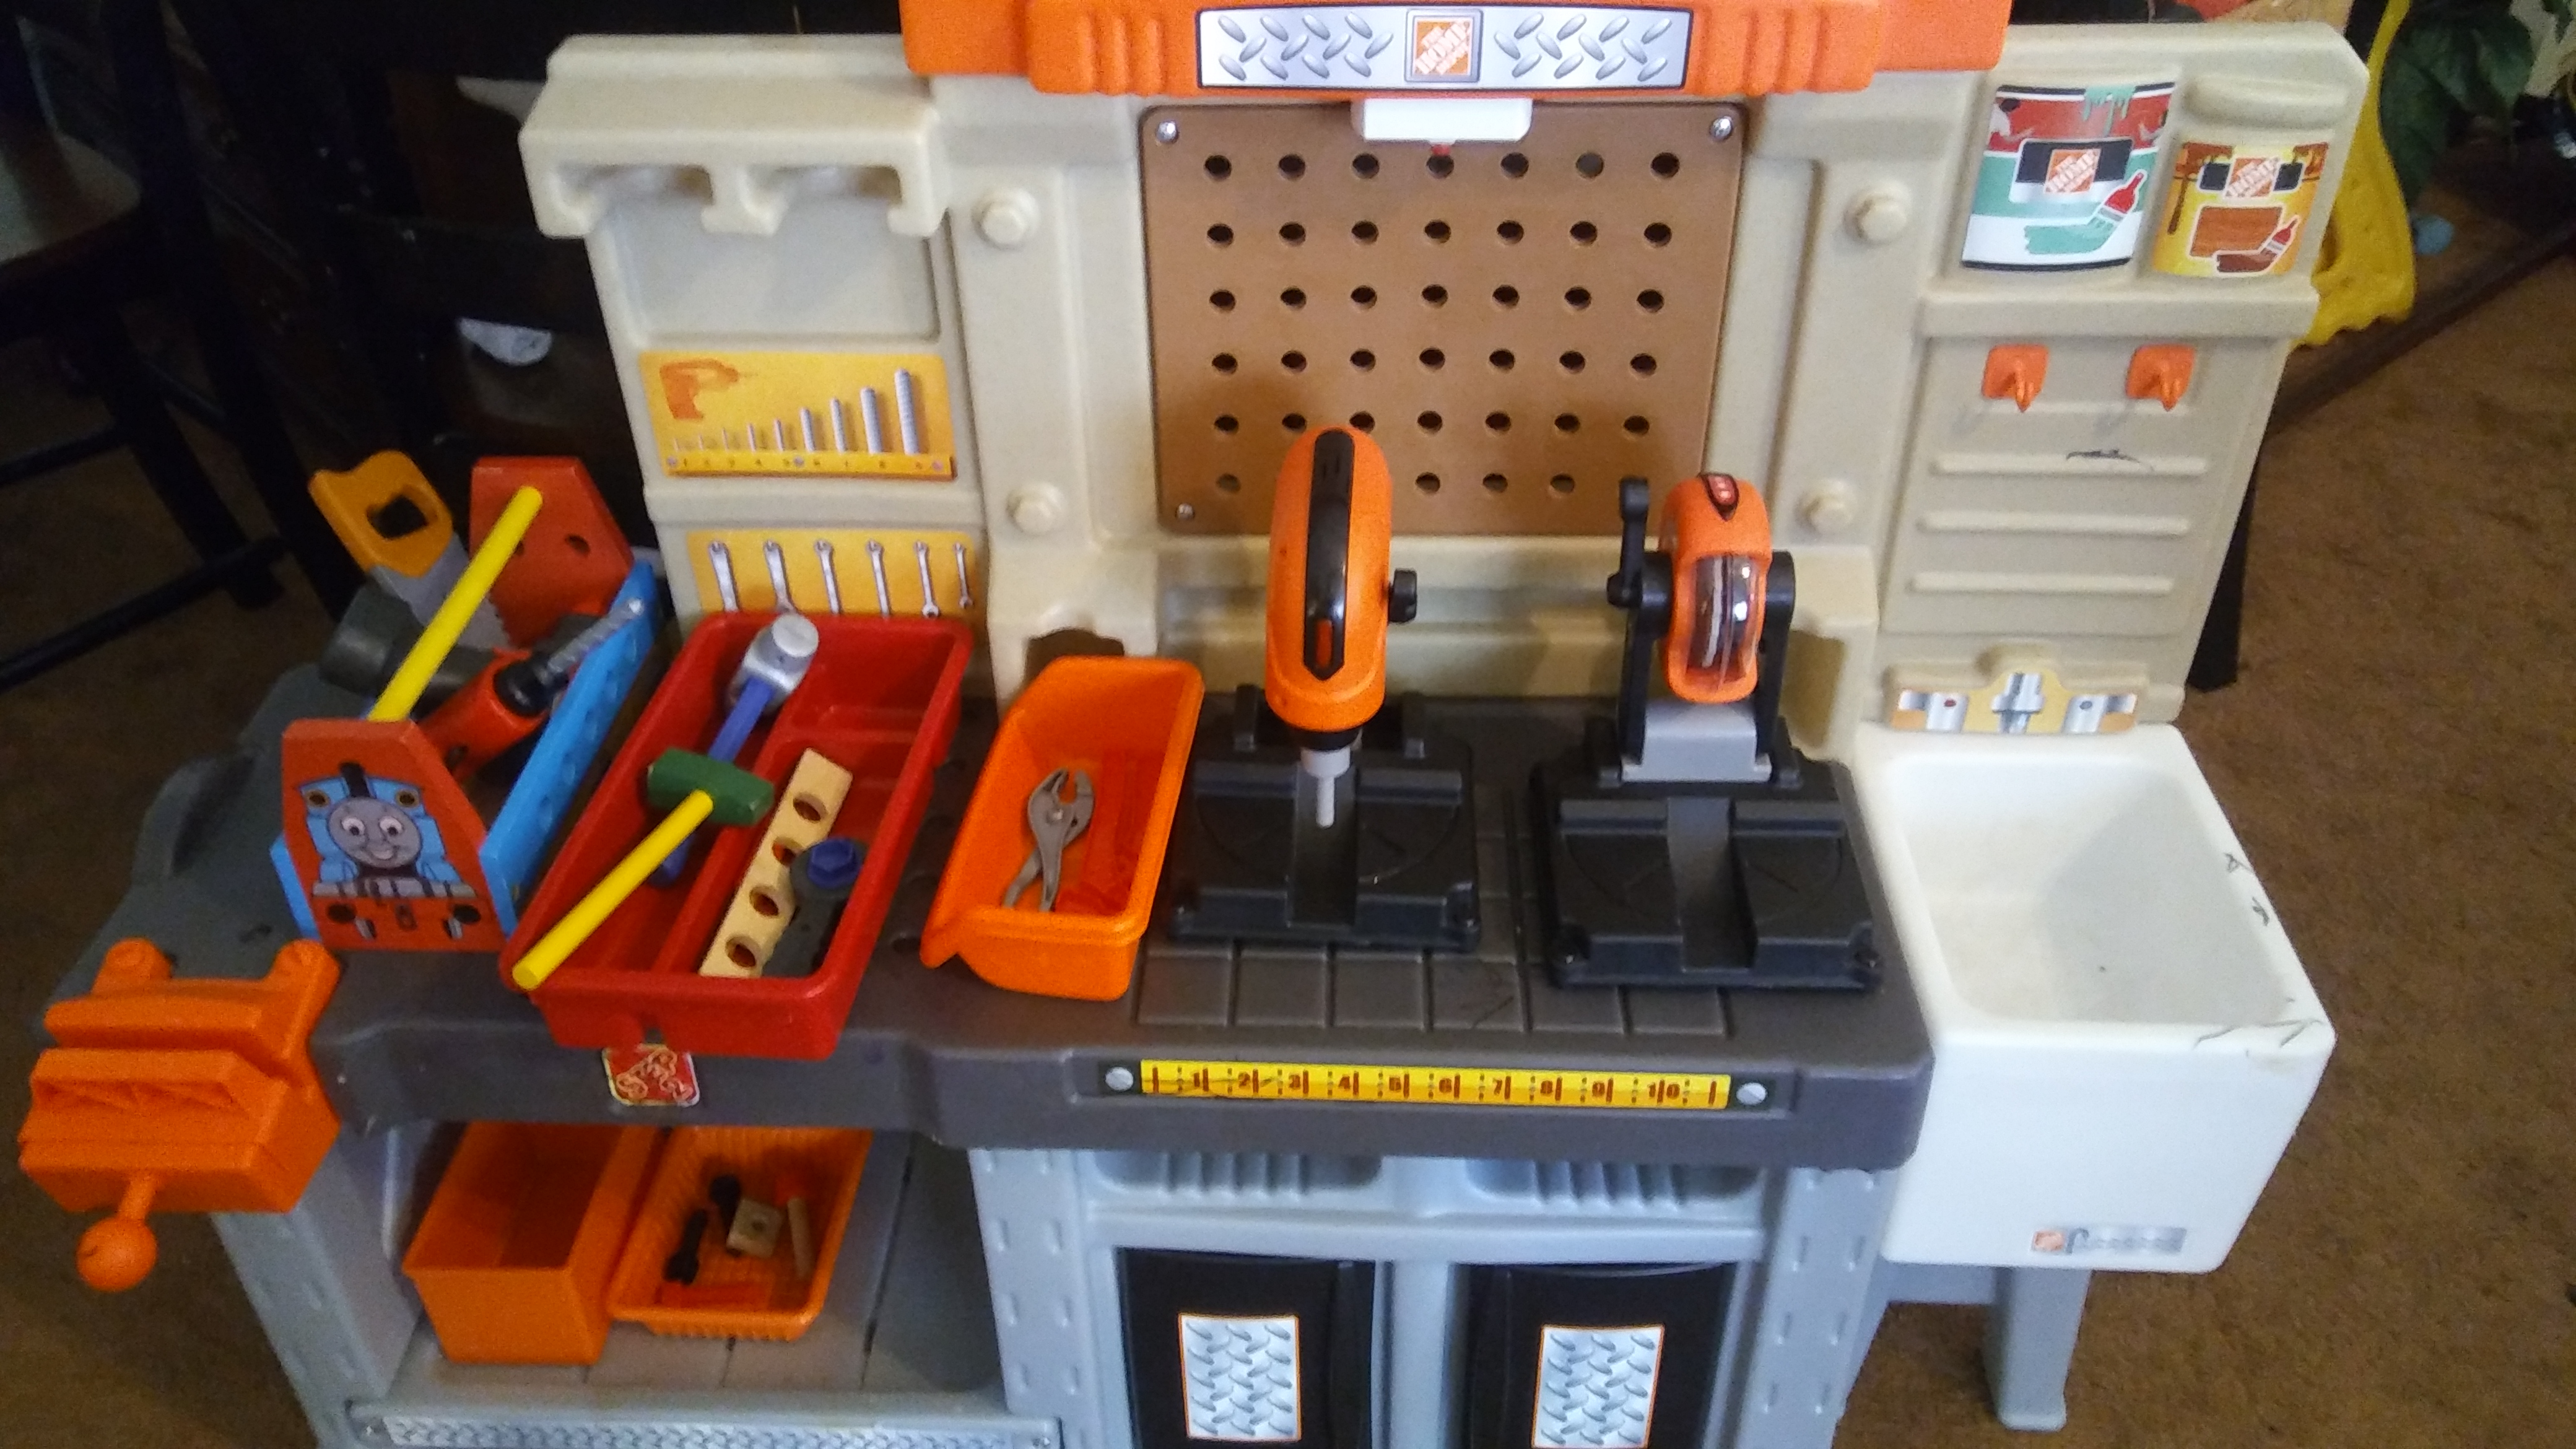 Home depit tool bench and power tools .